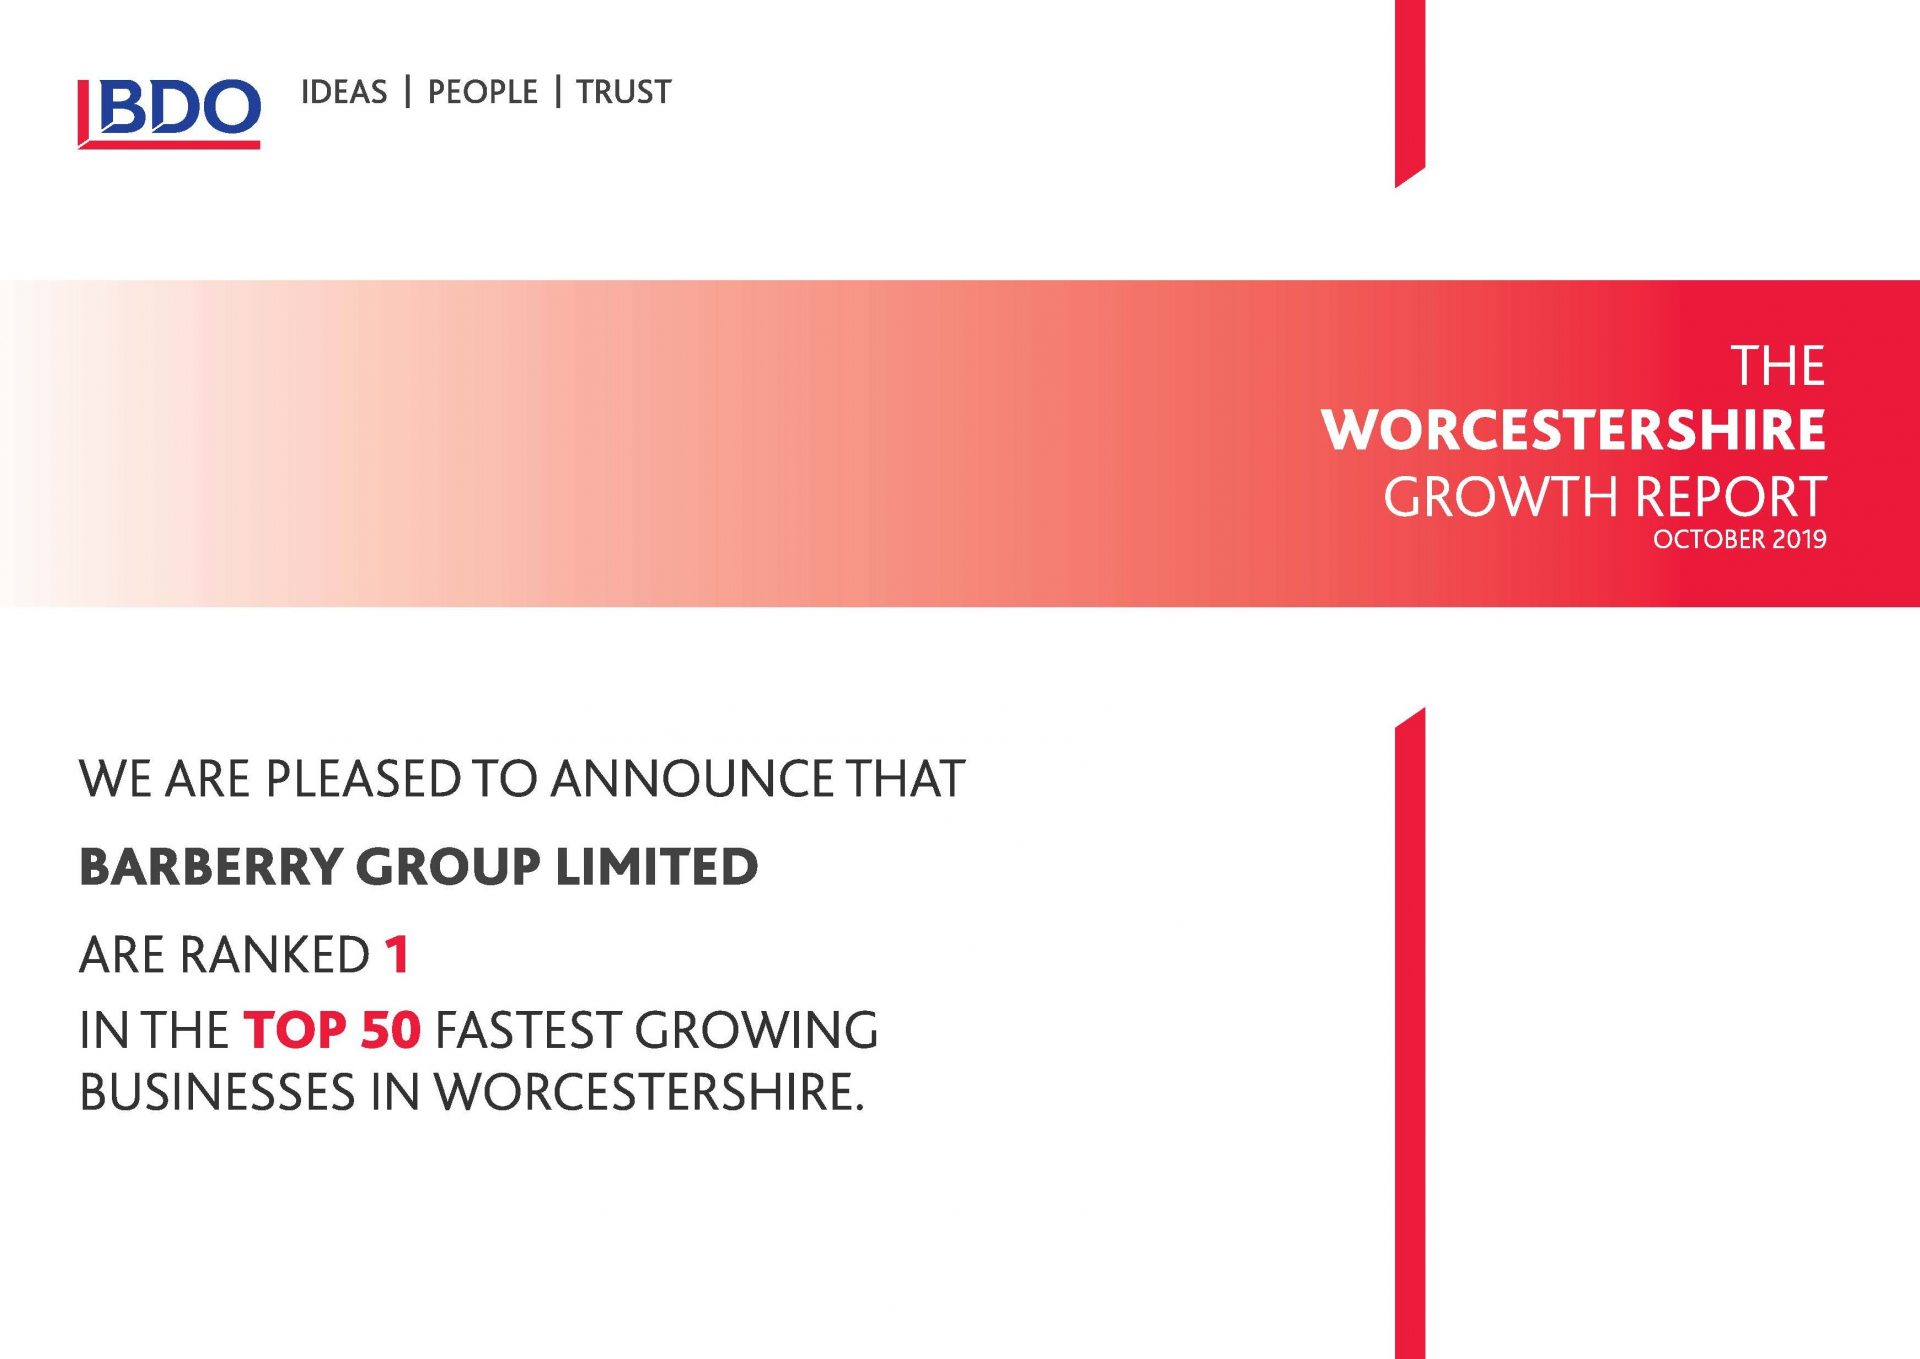 BDO's Worcestershire Growth Report certificate to Barberry Group Ltd as No.1 in the top 50 fastest growing businesses in Worcestershire